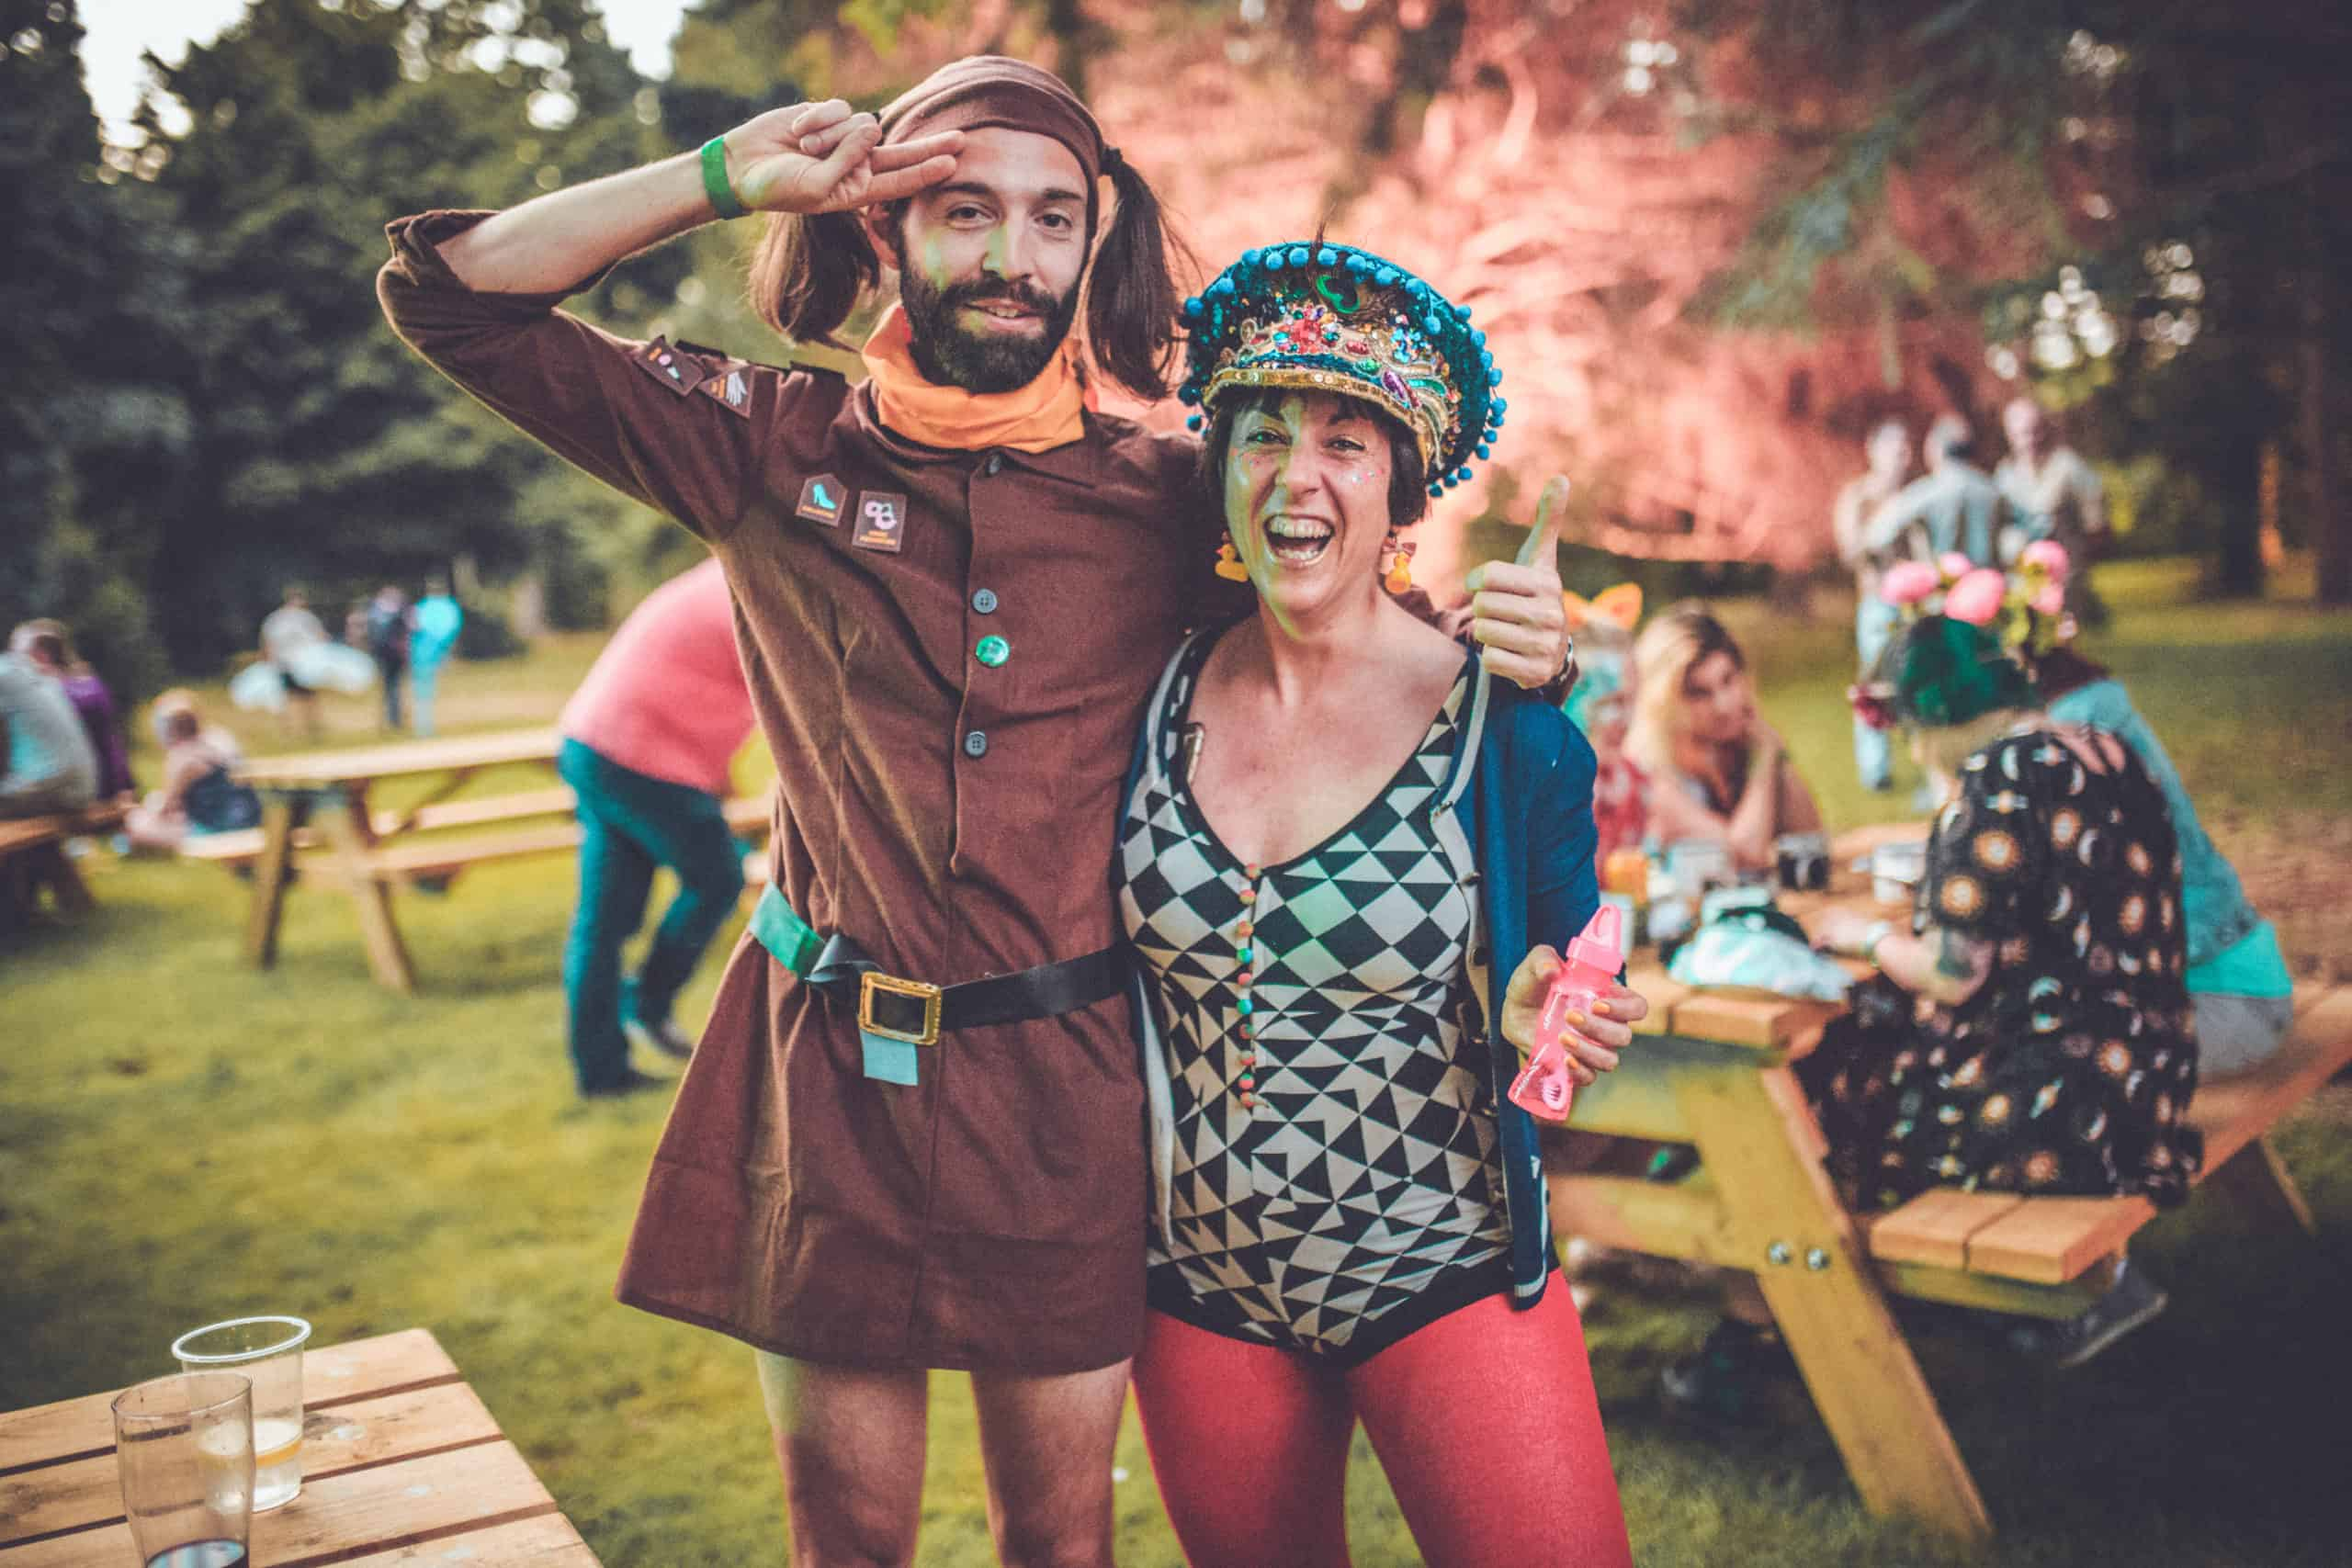 Brownie style fancy dress at Camp Wildfire. A summer weekend break in a forest near London and Kent. An outdoor woodland retreat featuring adventure activities, live music, DJs, parties and camping. Half summer adventure activity camp, half music festival, for adults only.